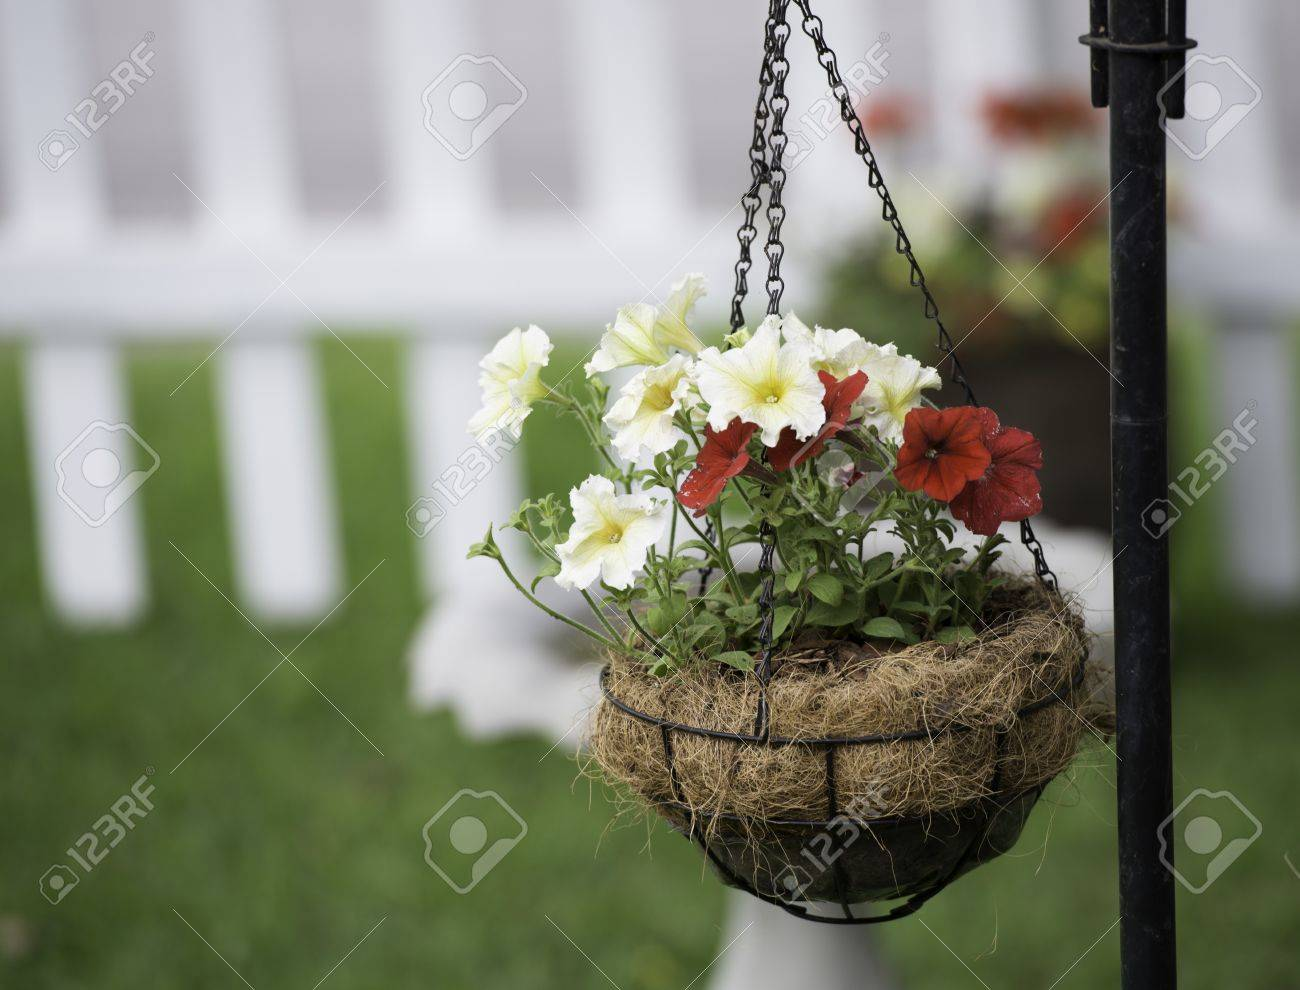 Red and Yellow Petunias in a Hanging Basket Stock Photo - 19759461